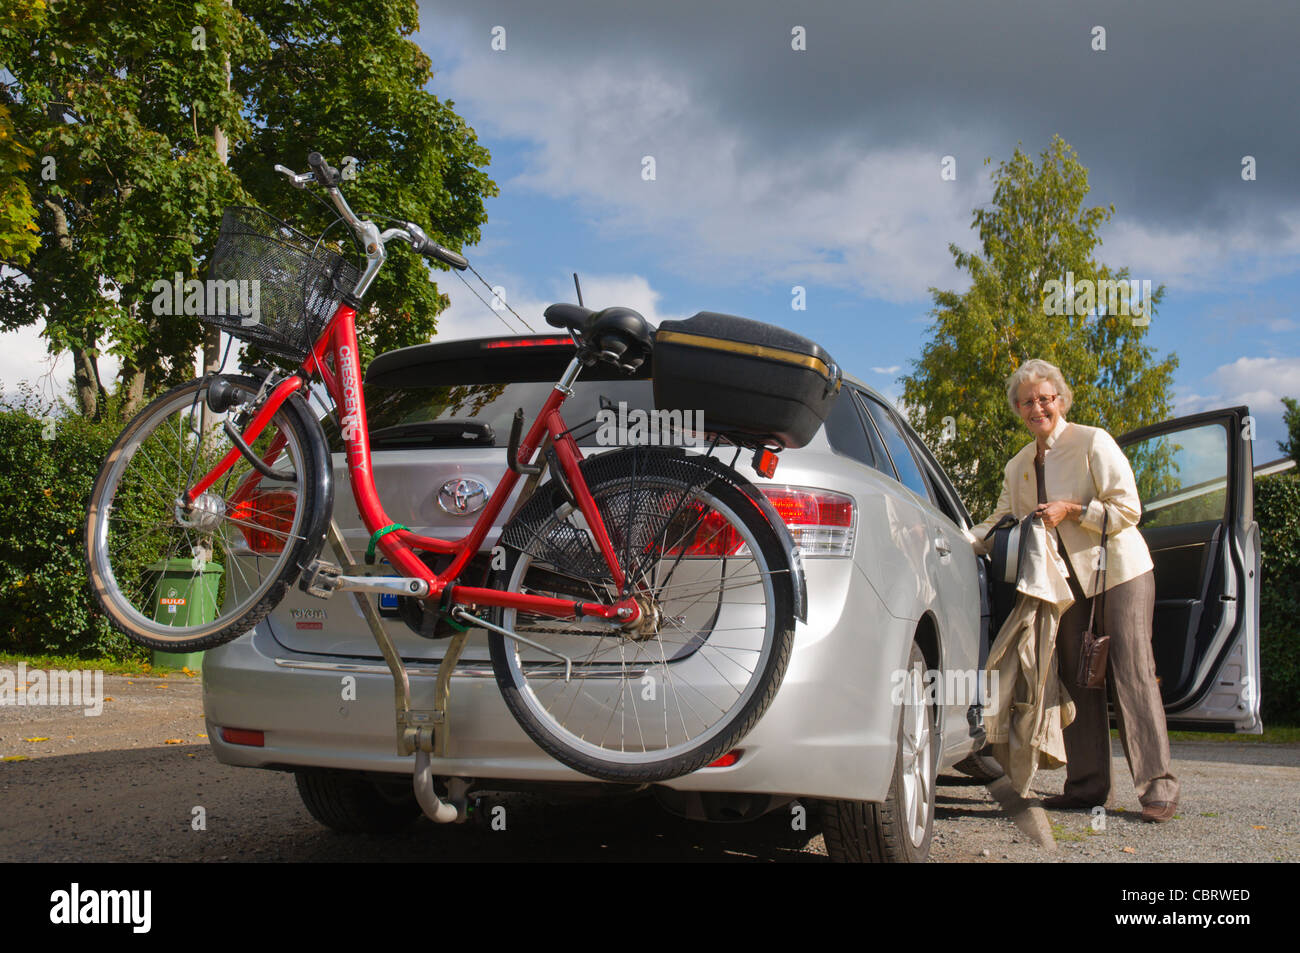 Car transporting a bicycle Finland Europe - Stock Image